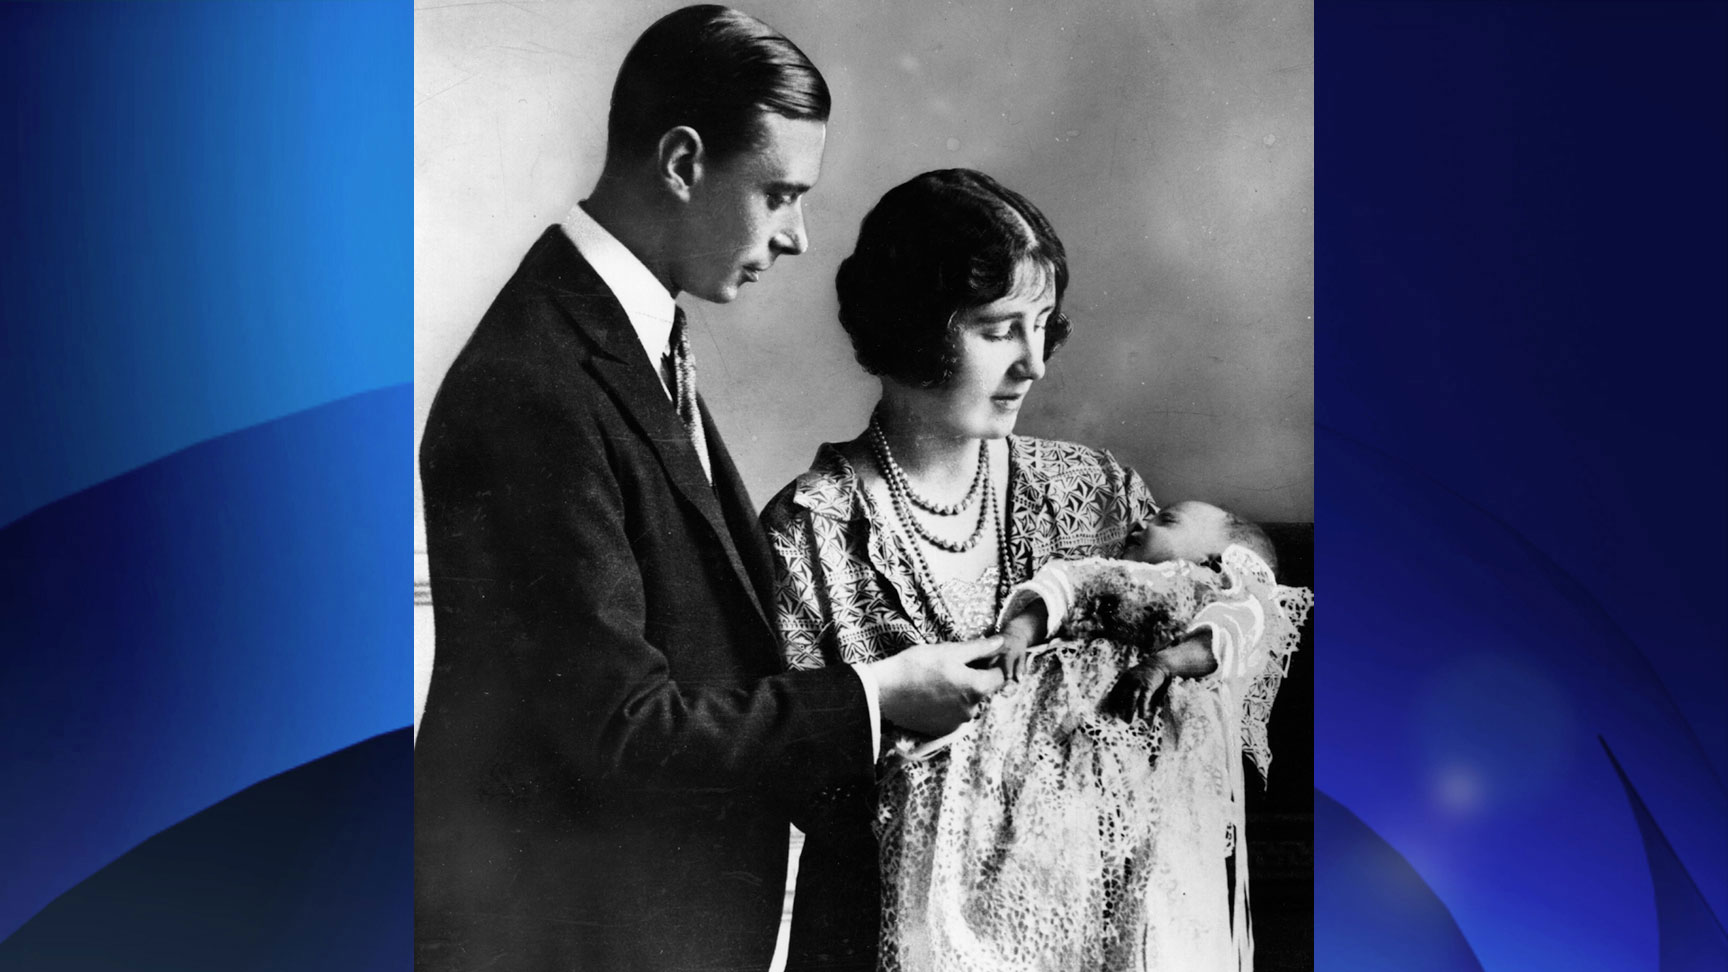 Future King and Queen, George, Duke of York (1895-1952) and Elizabeth Duchess of York (1900-2002) holding their first child, future Monarch Princess Elizabeth at her christening ceremony in May, 1926. GETTY IMAGES/Central Press